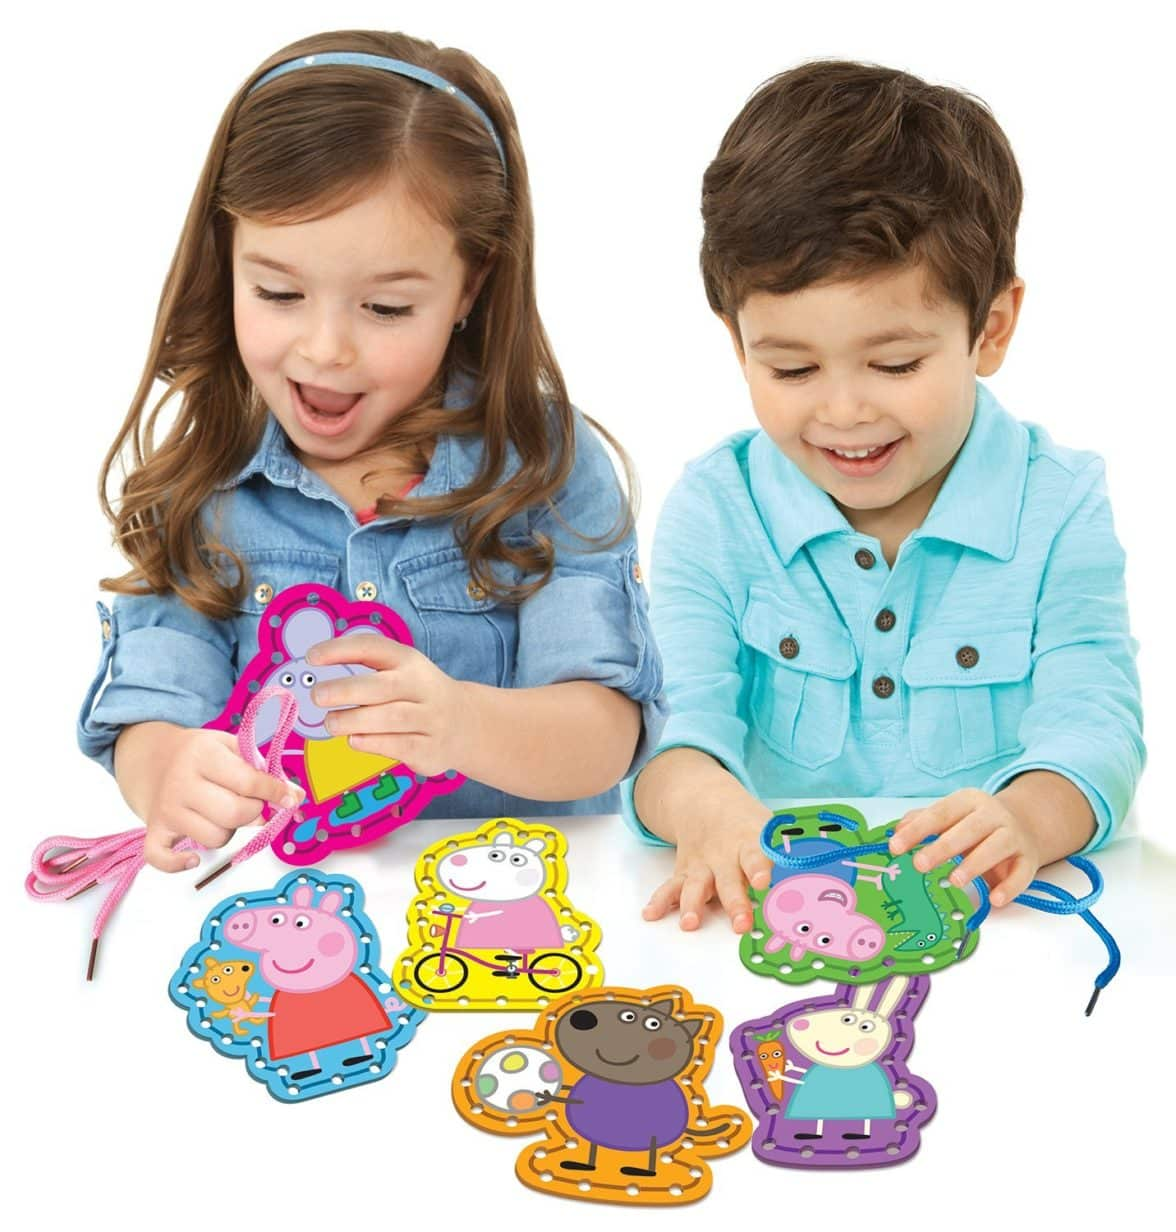 Cra-Z-Art Peppa Pig Learn To Lace Building Kit